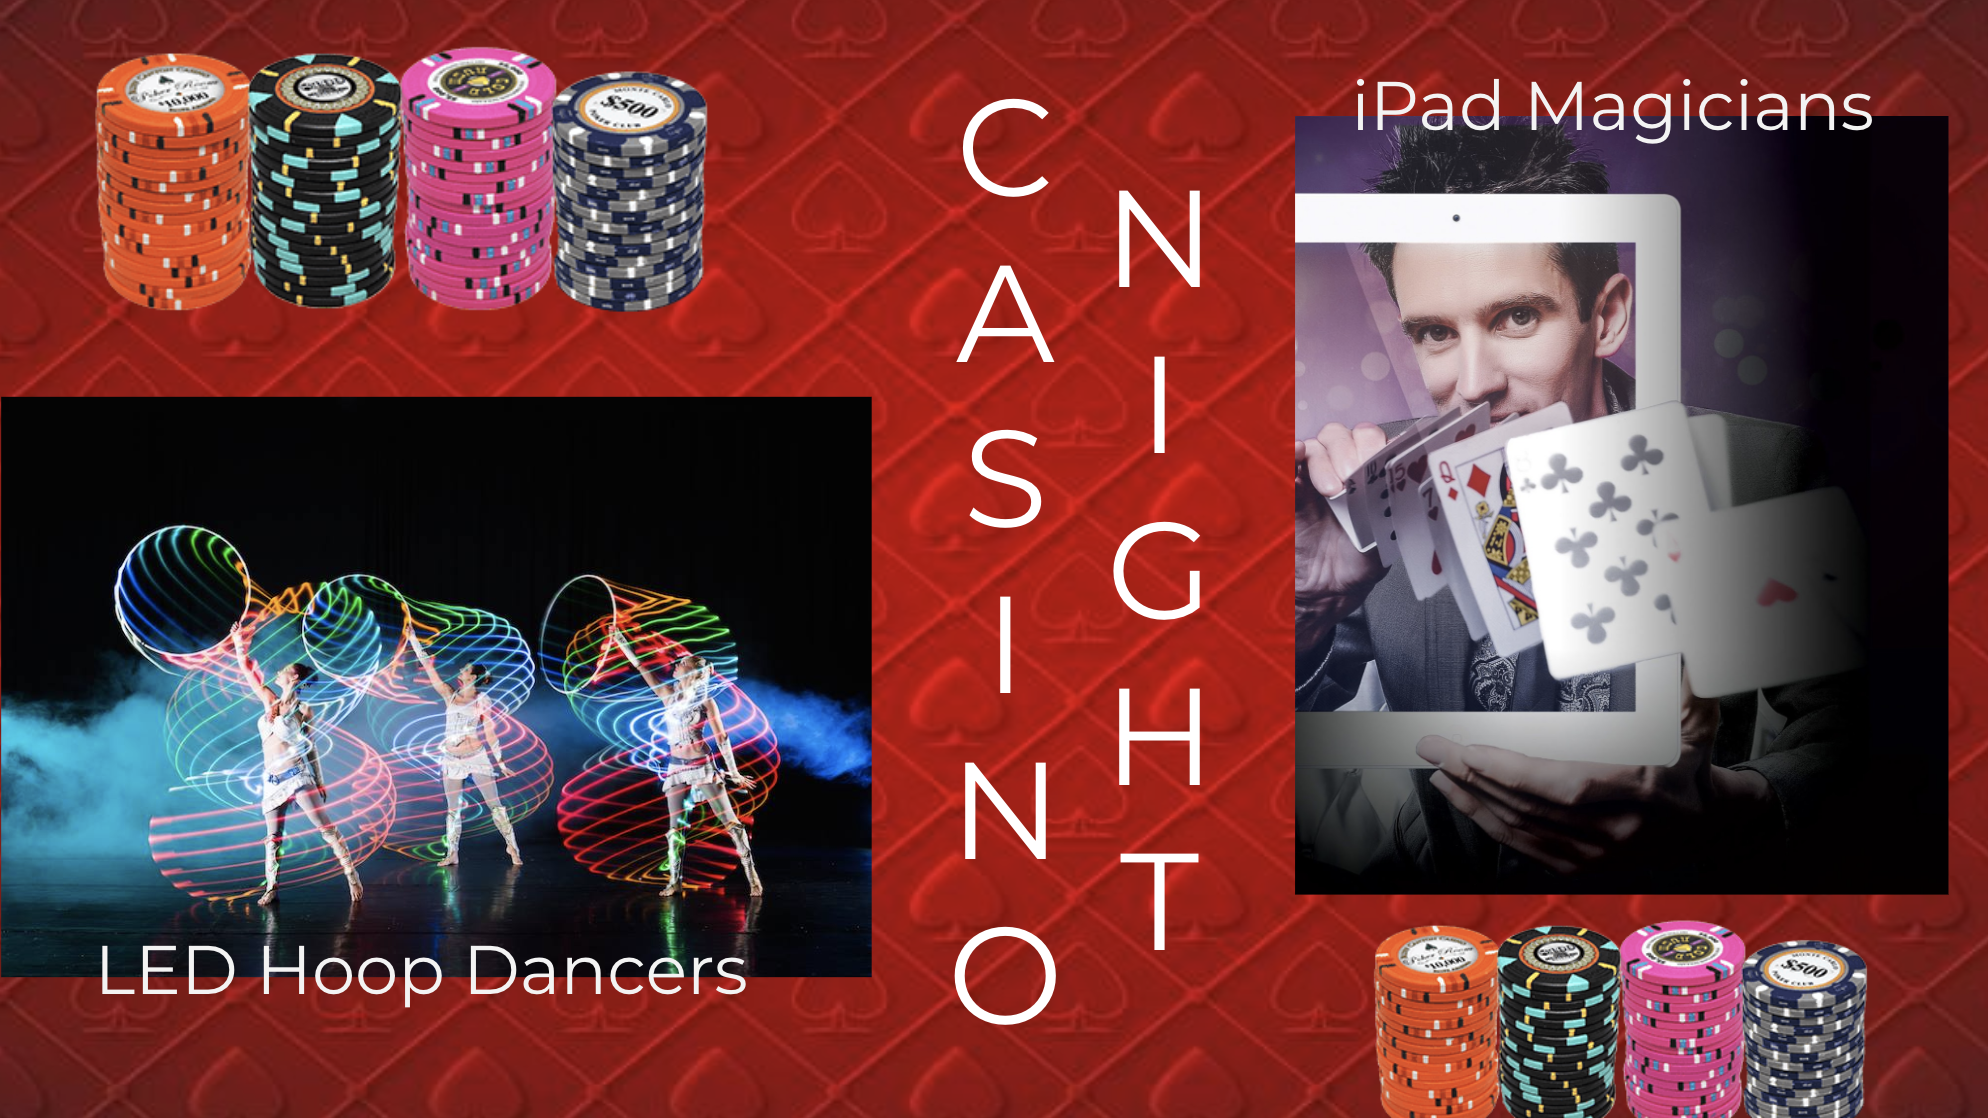 Casino night - event themes